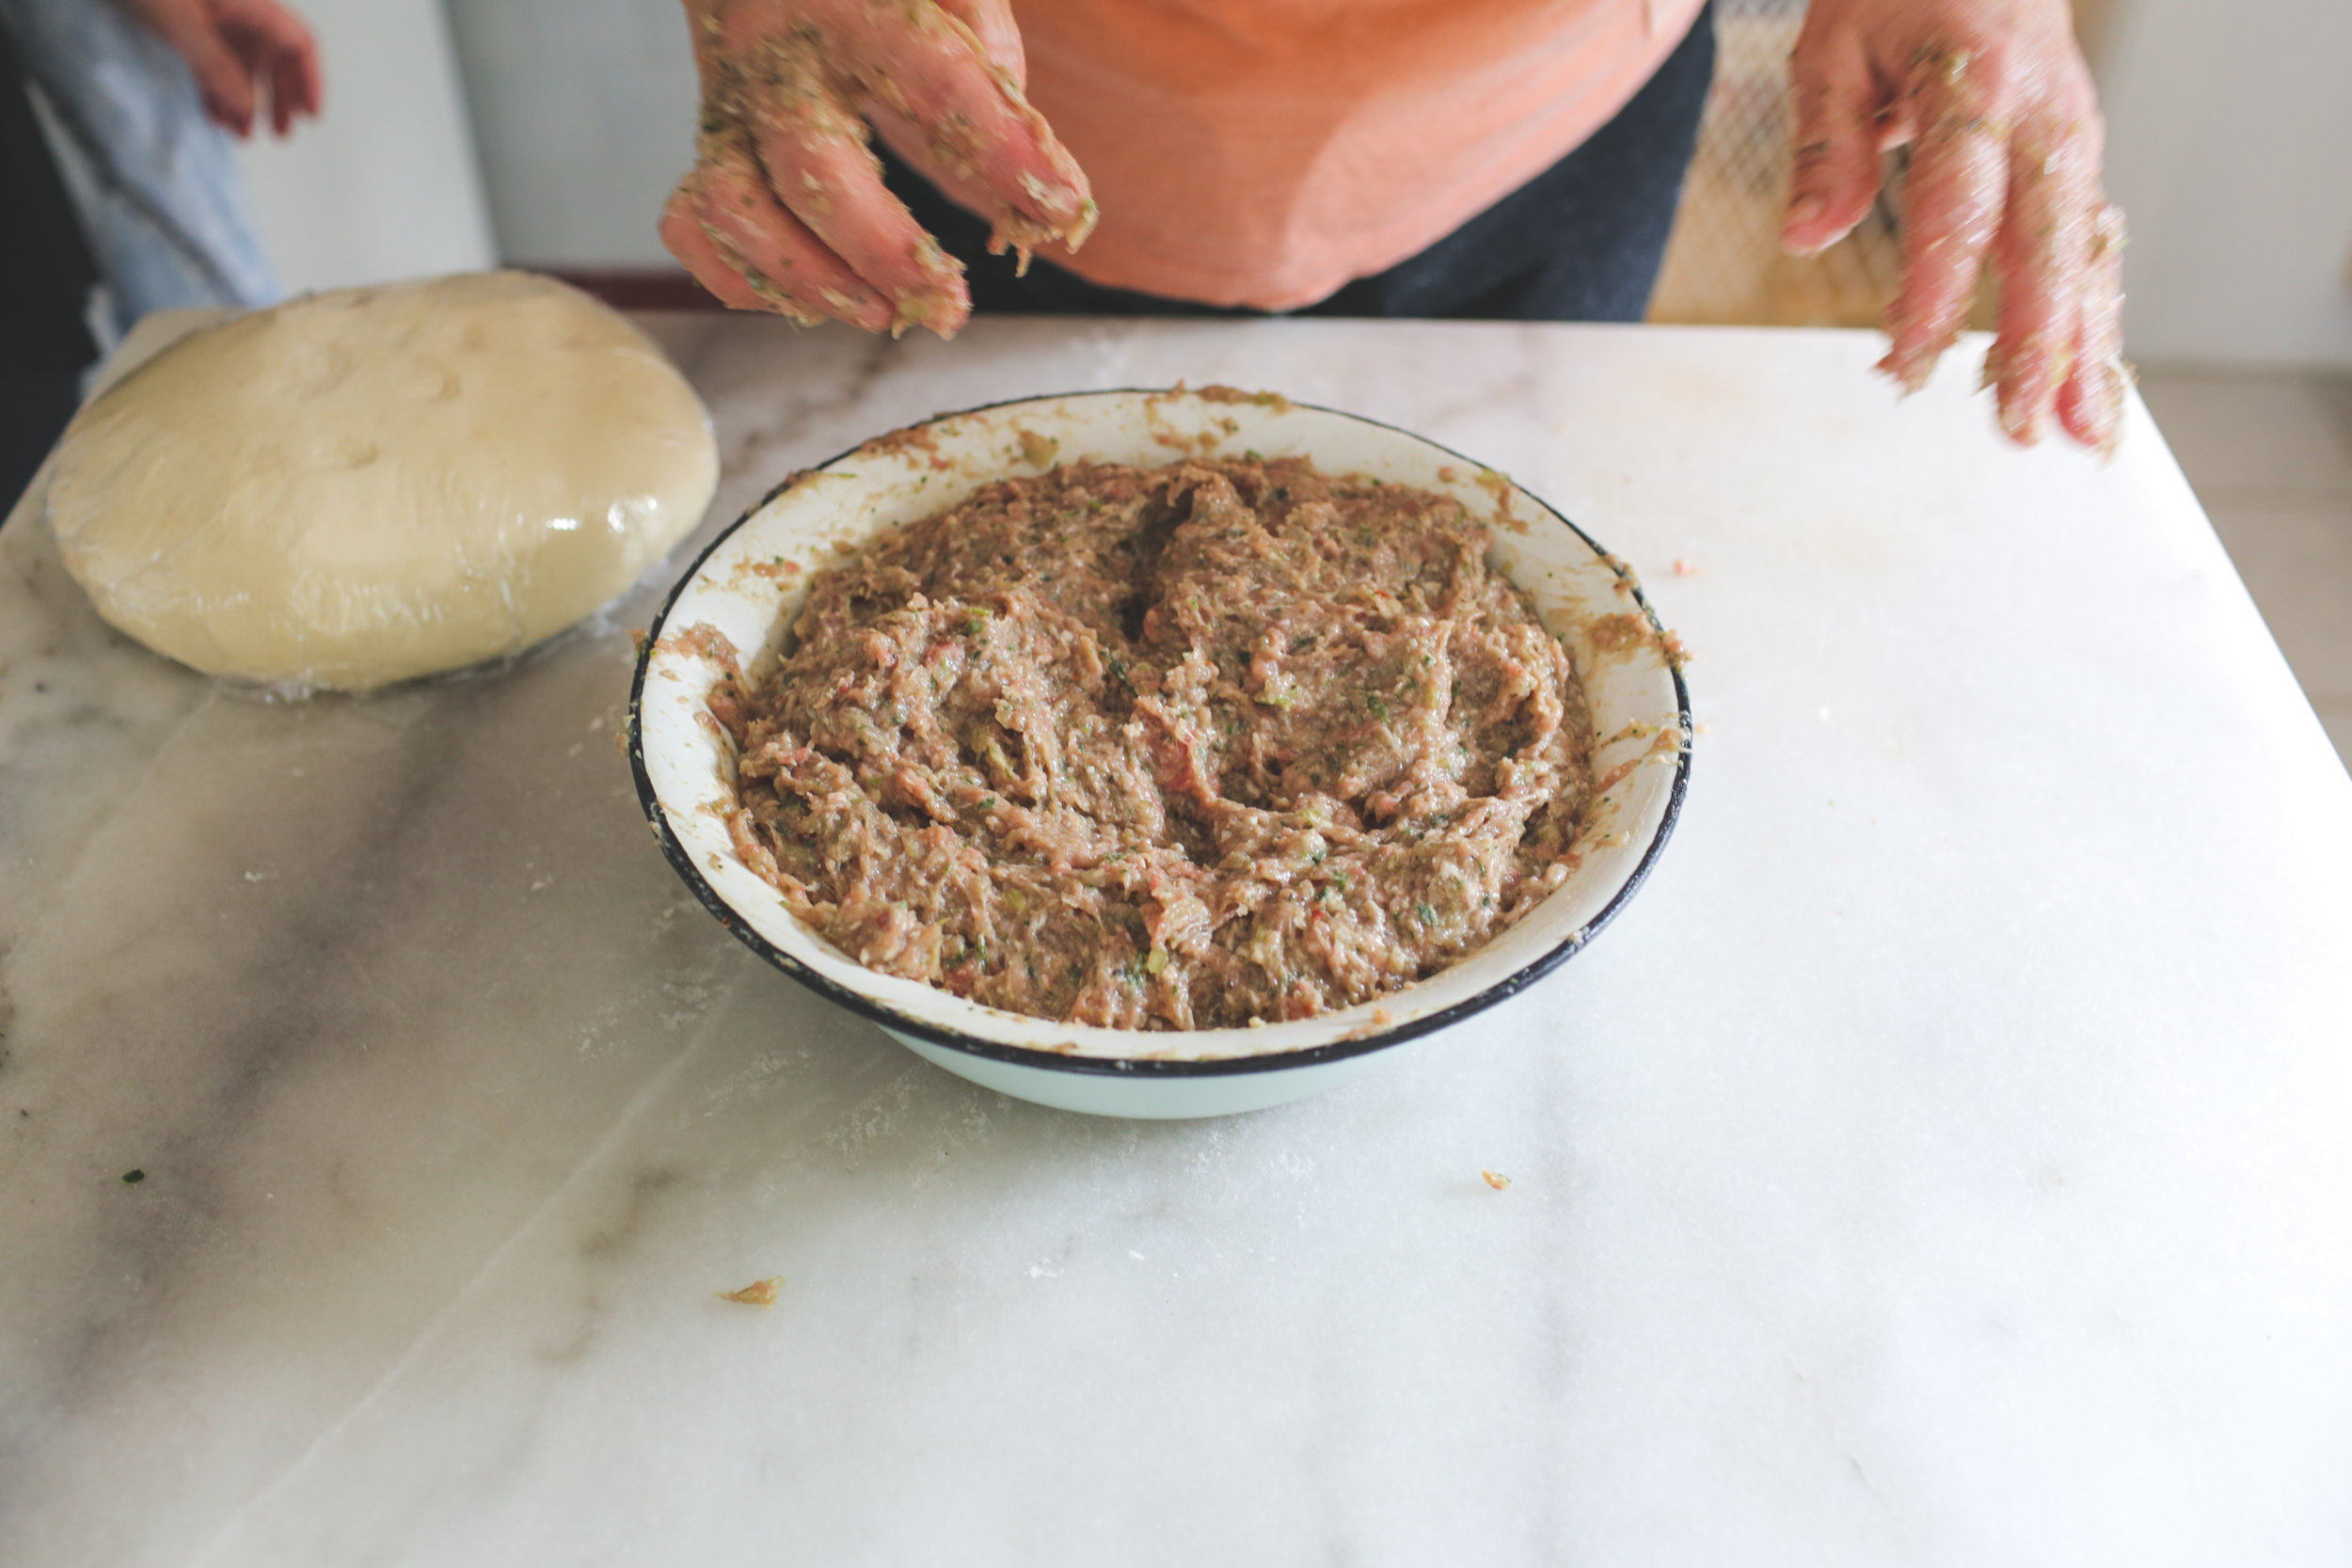 10. Knead well until thoroughly combined.